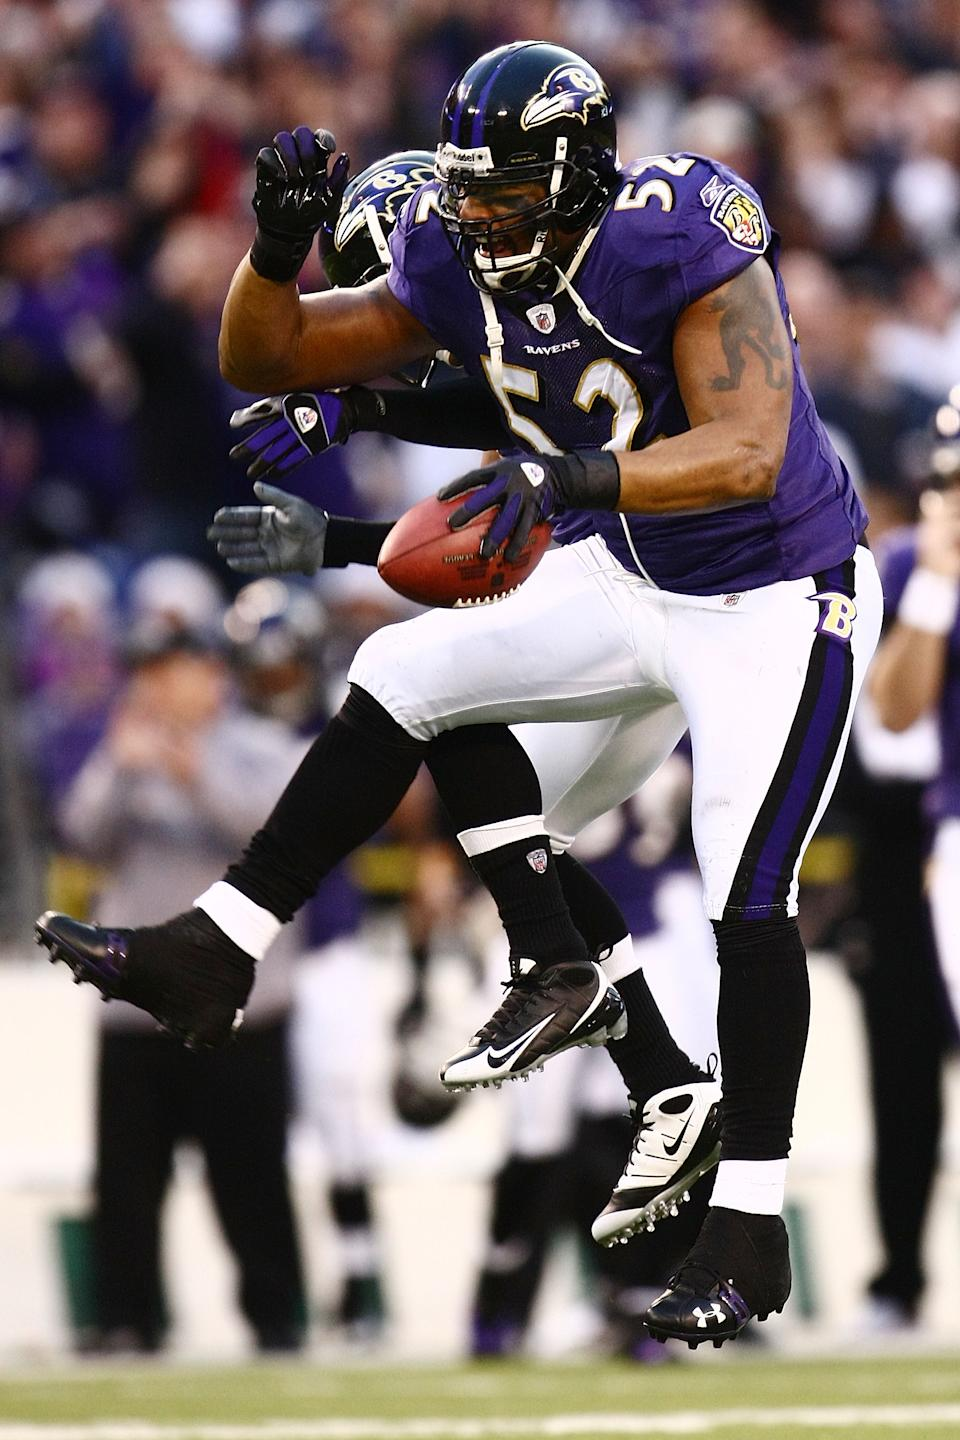 BALTIMORE - DECEMBER 28: Ray Lewis #52 of the Baltimore Ravens celebrates recovering the ball against the Jacksonville Jaguars during the game on December 28, 2008 at M&T Bank Stadium in Baltimore, Maryland. (Photo by Chris McGrath/Getty Images)